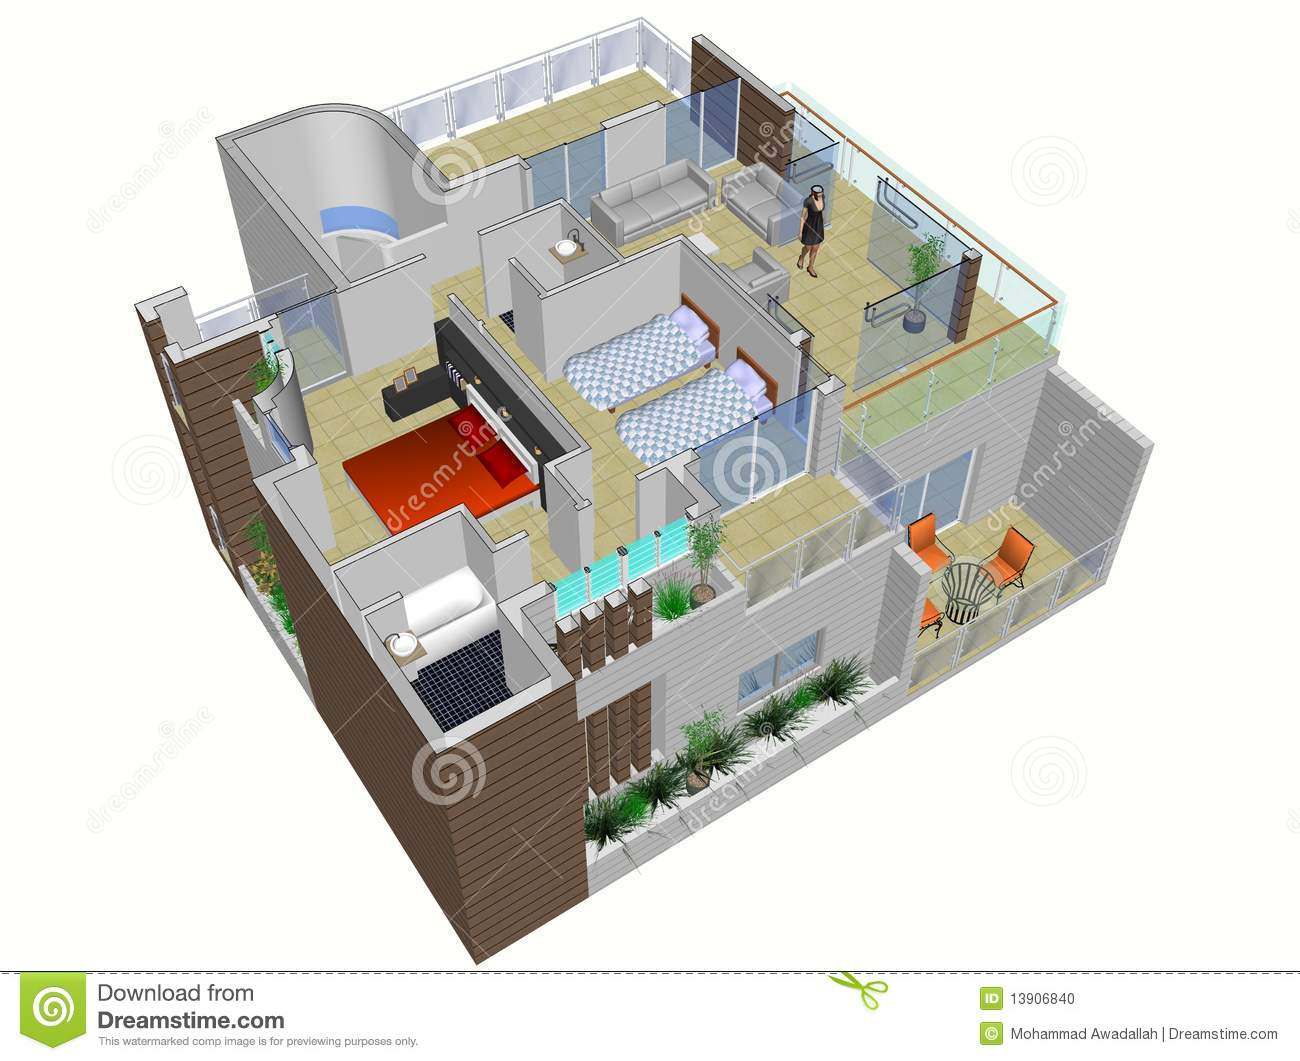 Architectural plan of house stock photo image 13906840 for House floor plans architecture